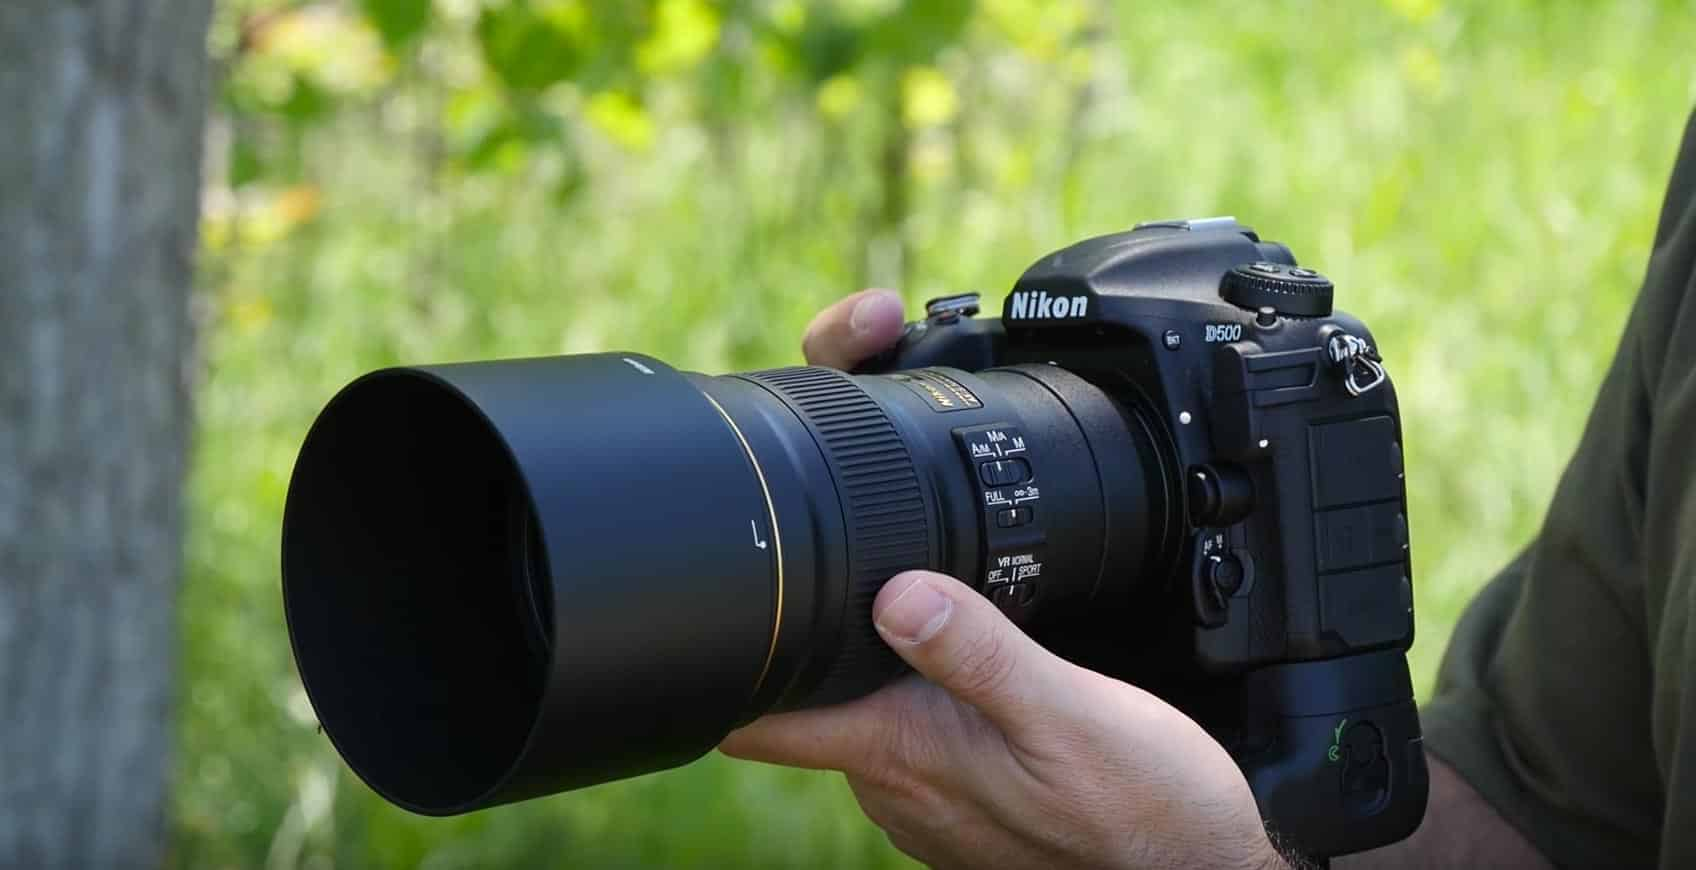 Nikon D500 Review For Wildlife Photography